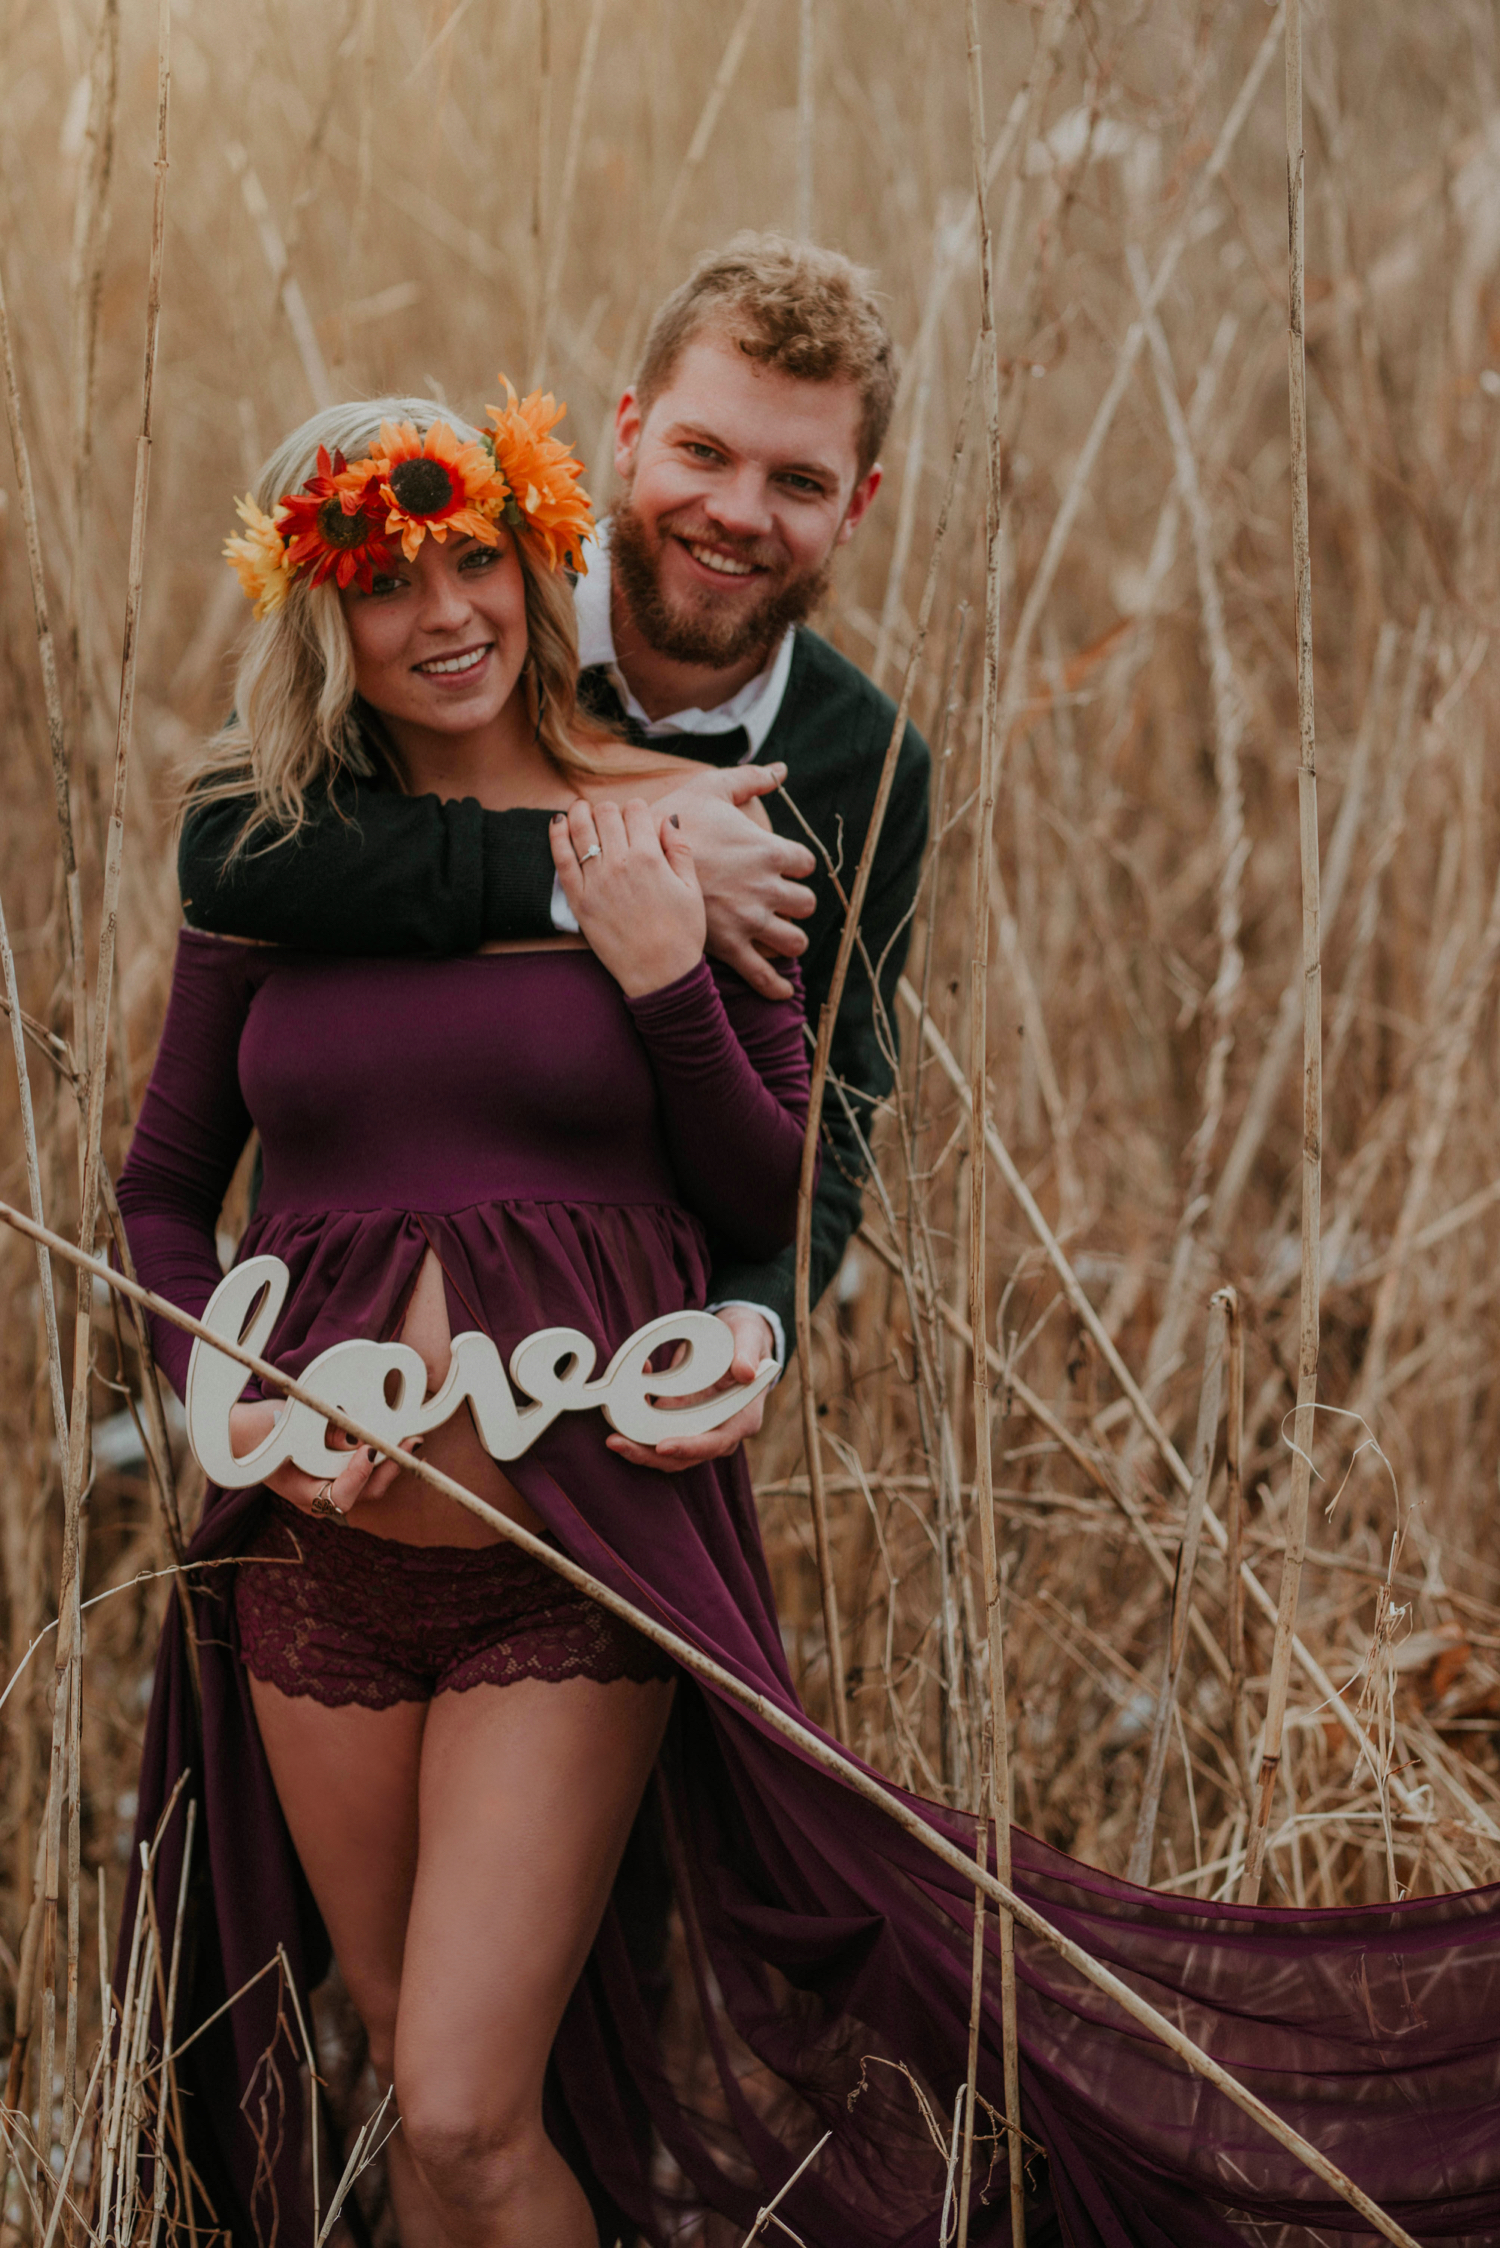 Image 1 of Maternity Shoot Turns into Surprise Marriage Proposal